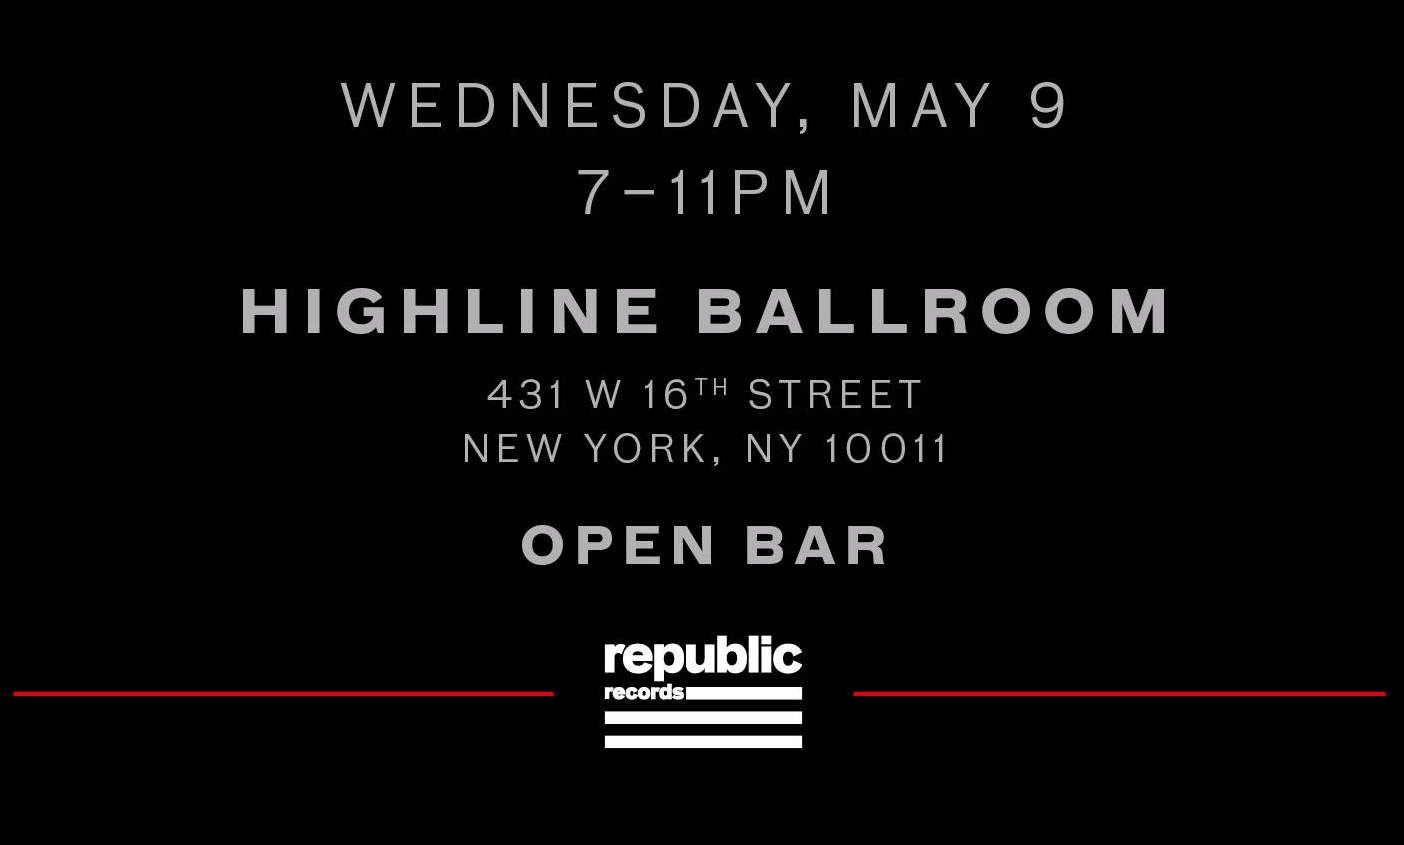 Wednesday, May 9. 7-11PM. Highline Ballroom - 431 W 16th Street. New York, NY 10011. Open Bar